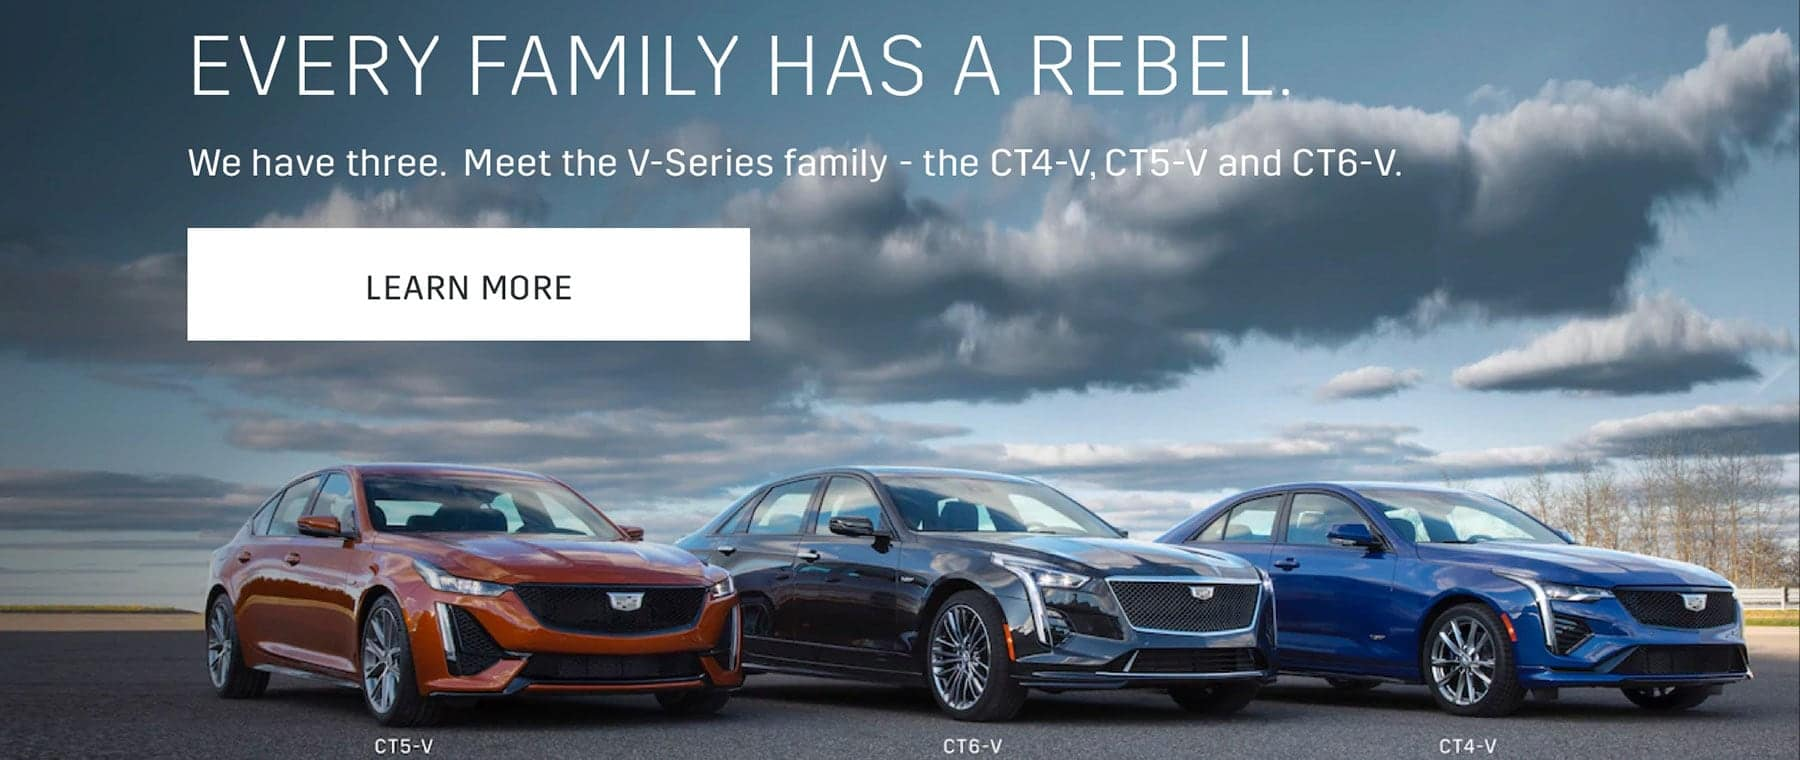 Every Family Has A Rebel. We have three. Meet the V-Series family. Learn More.